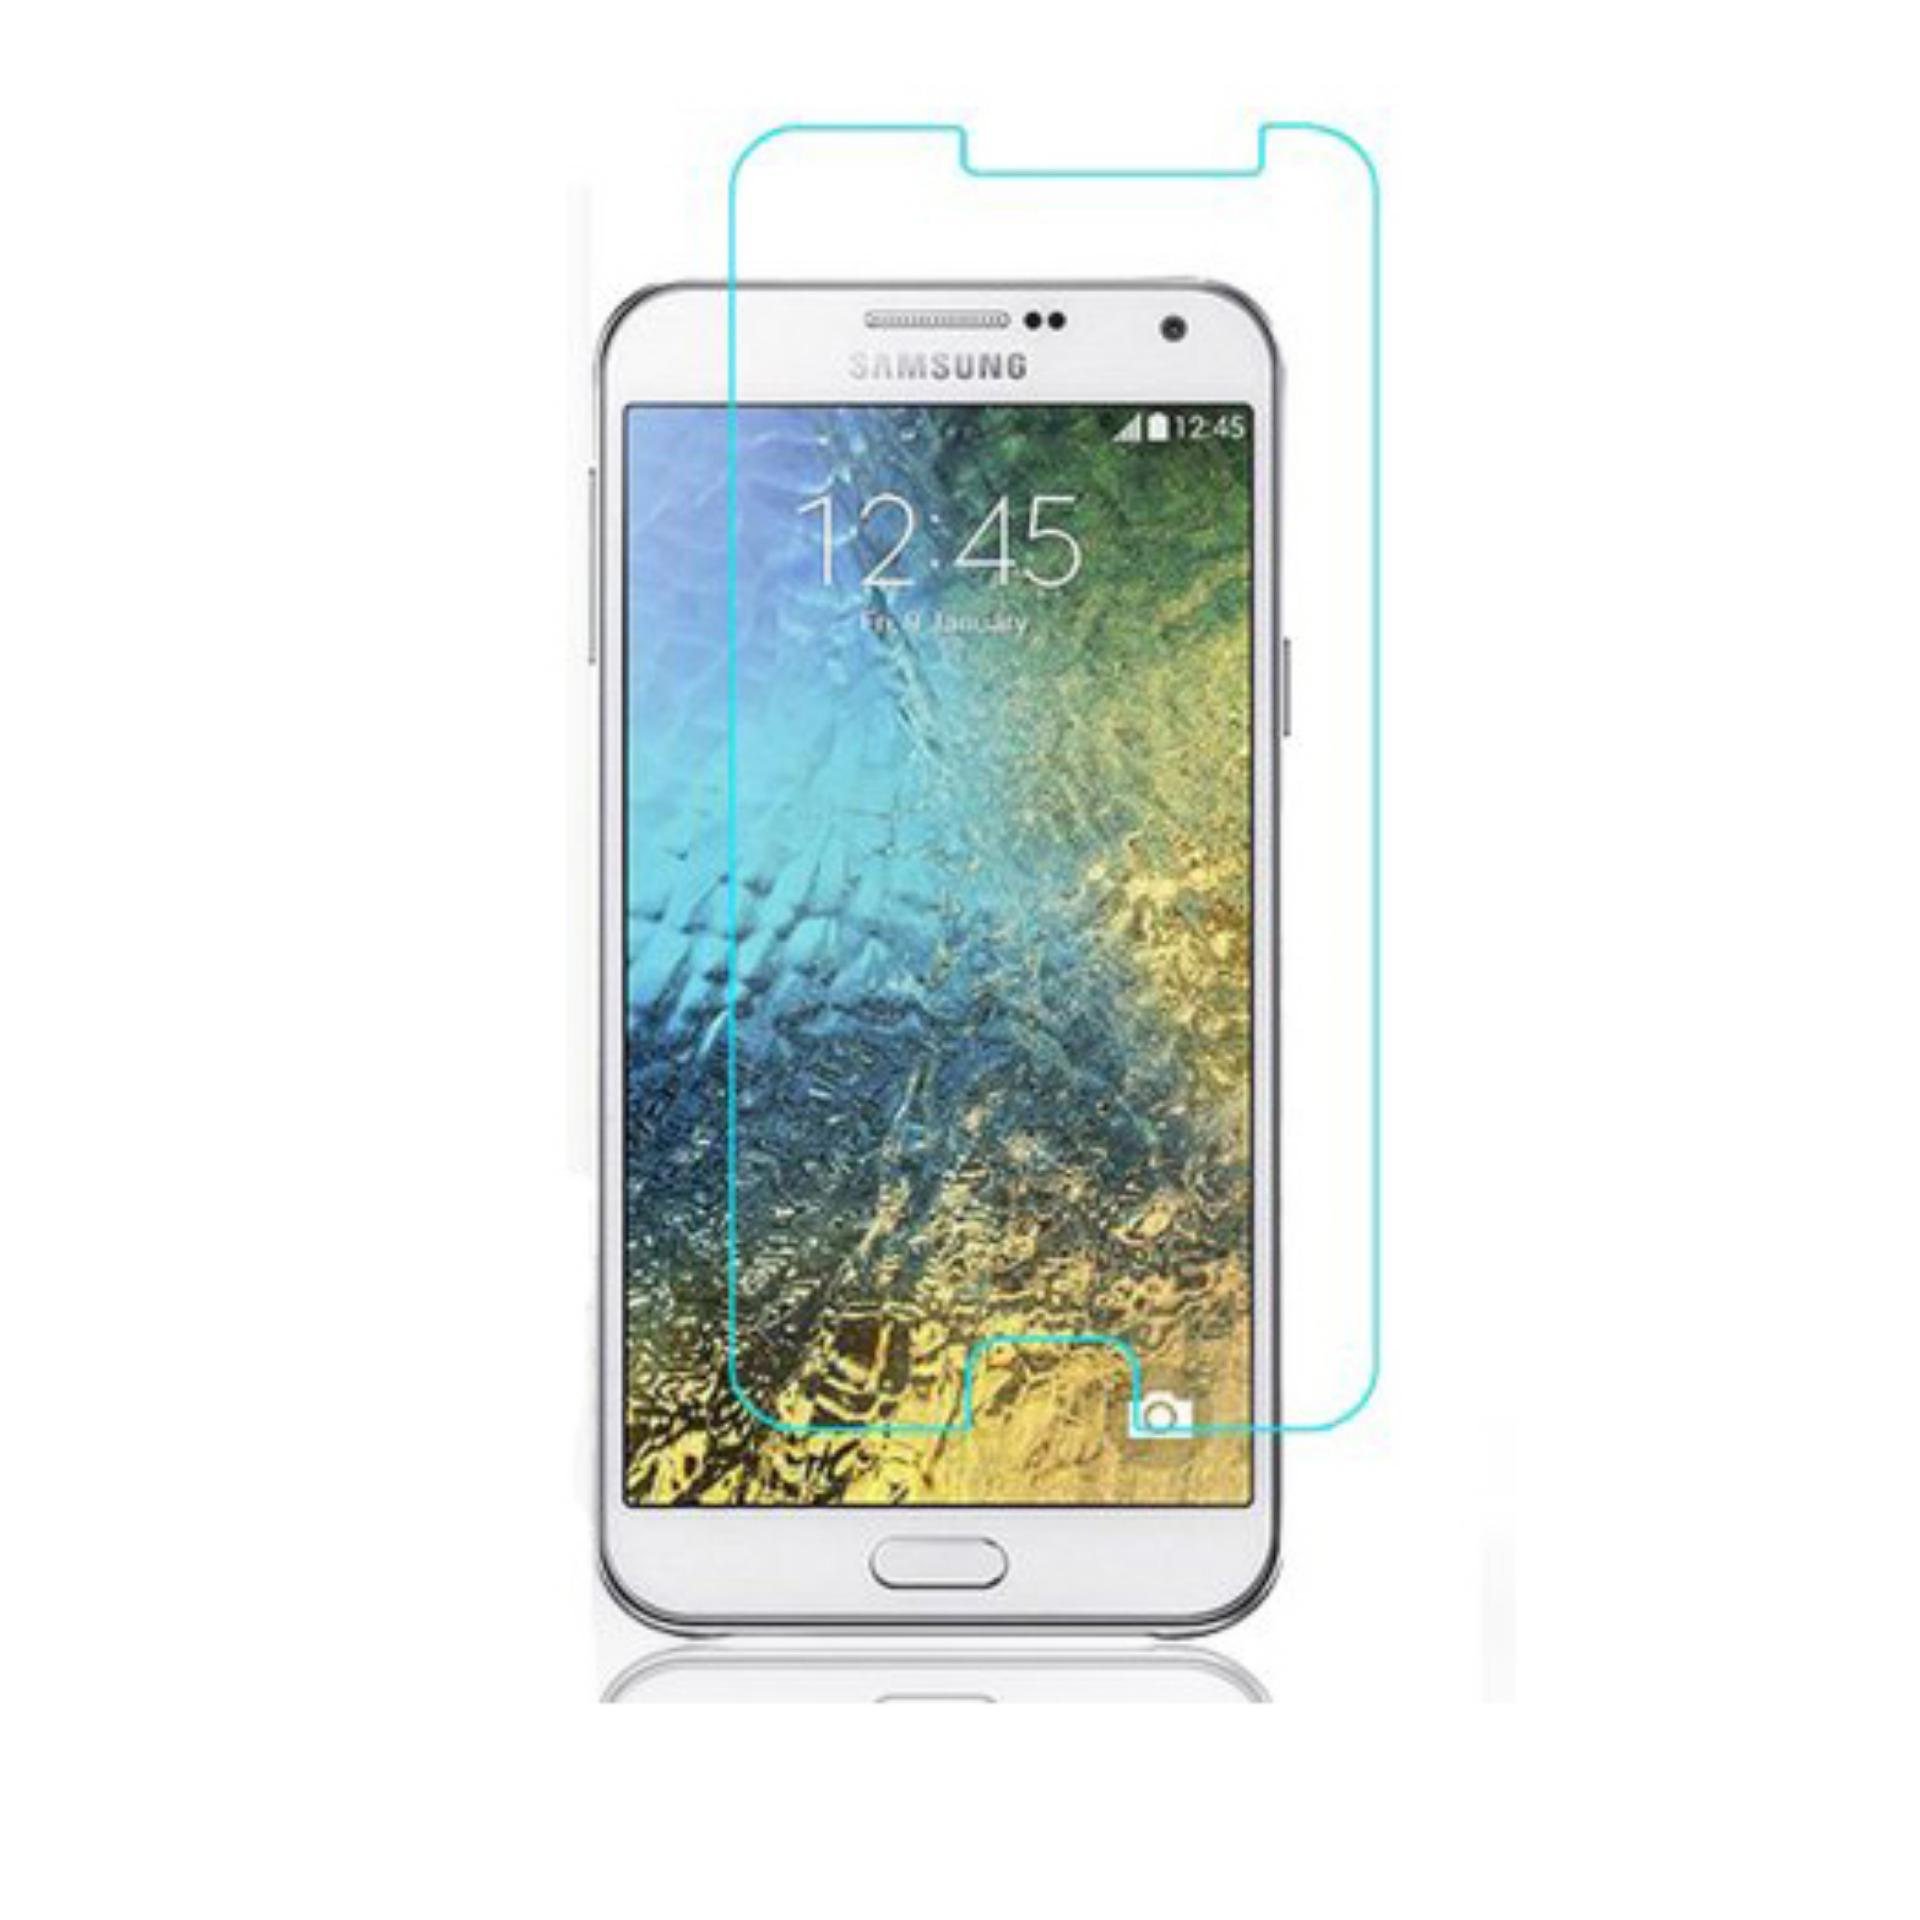 Vn Samsung Galaxy J7 2015 J700 4G LTE Duos Tempered Glass